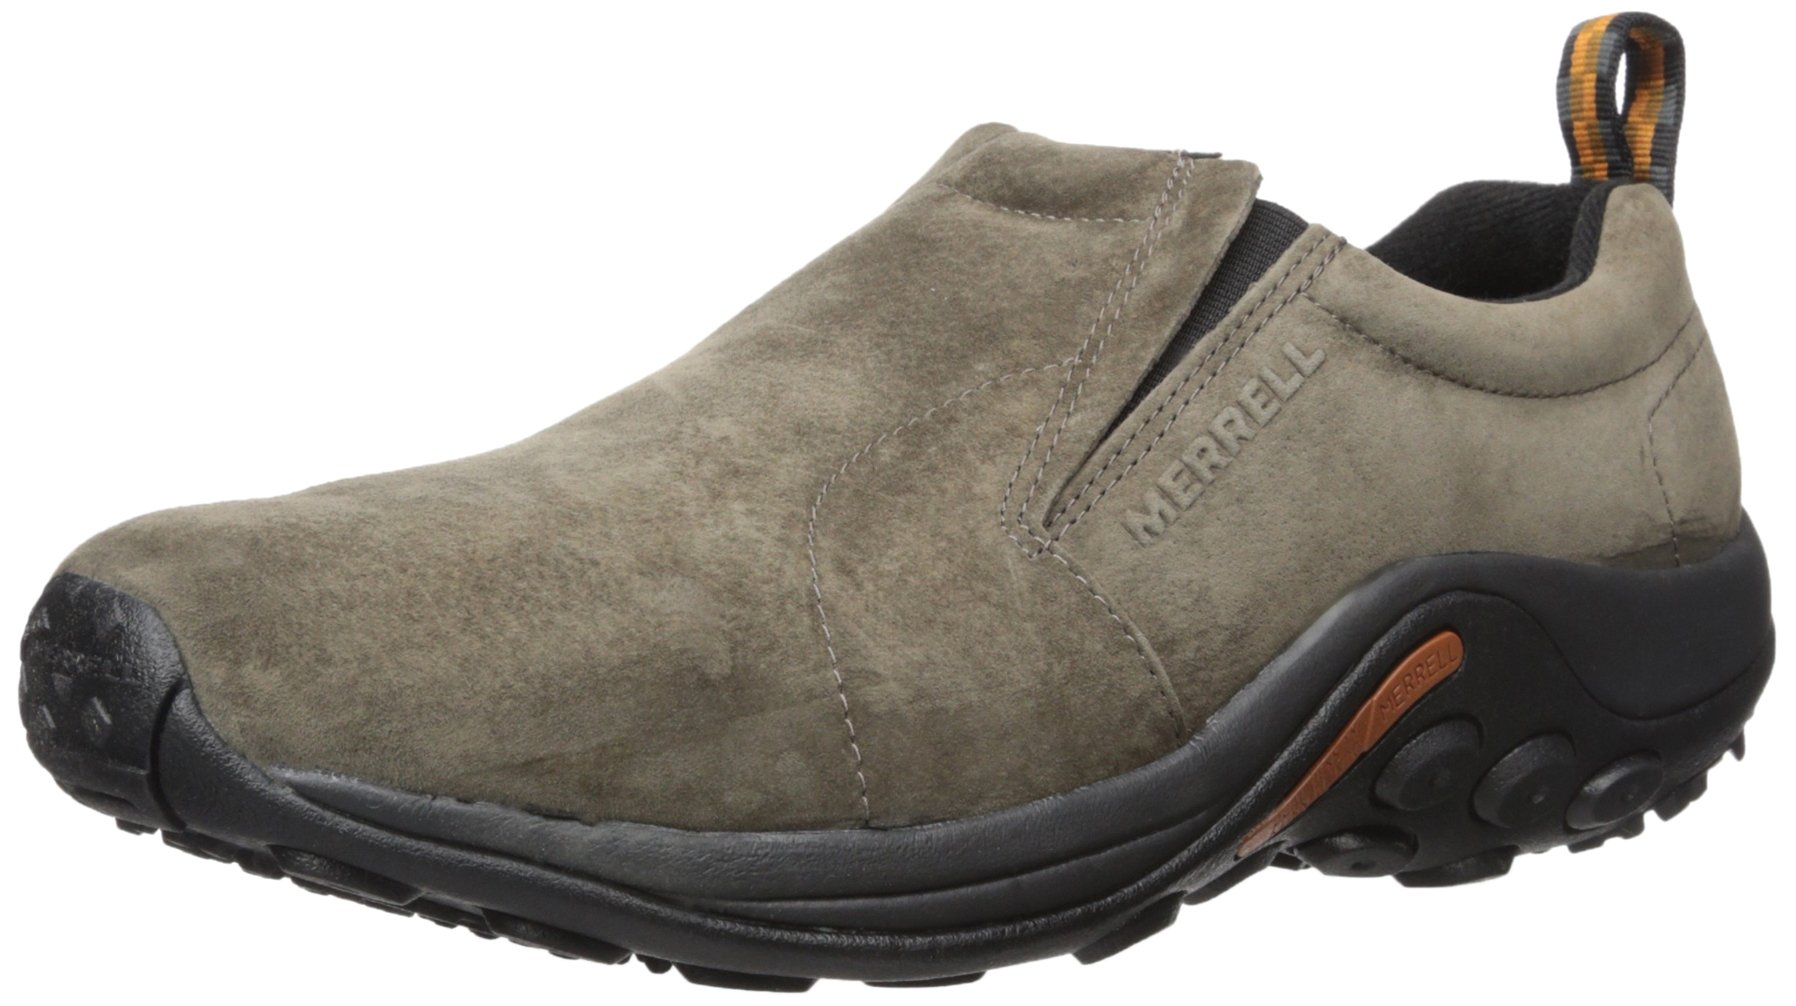 Merrell Men's Jungle Moc Slip-On Shoe,Gunsmoke,11 W US